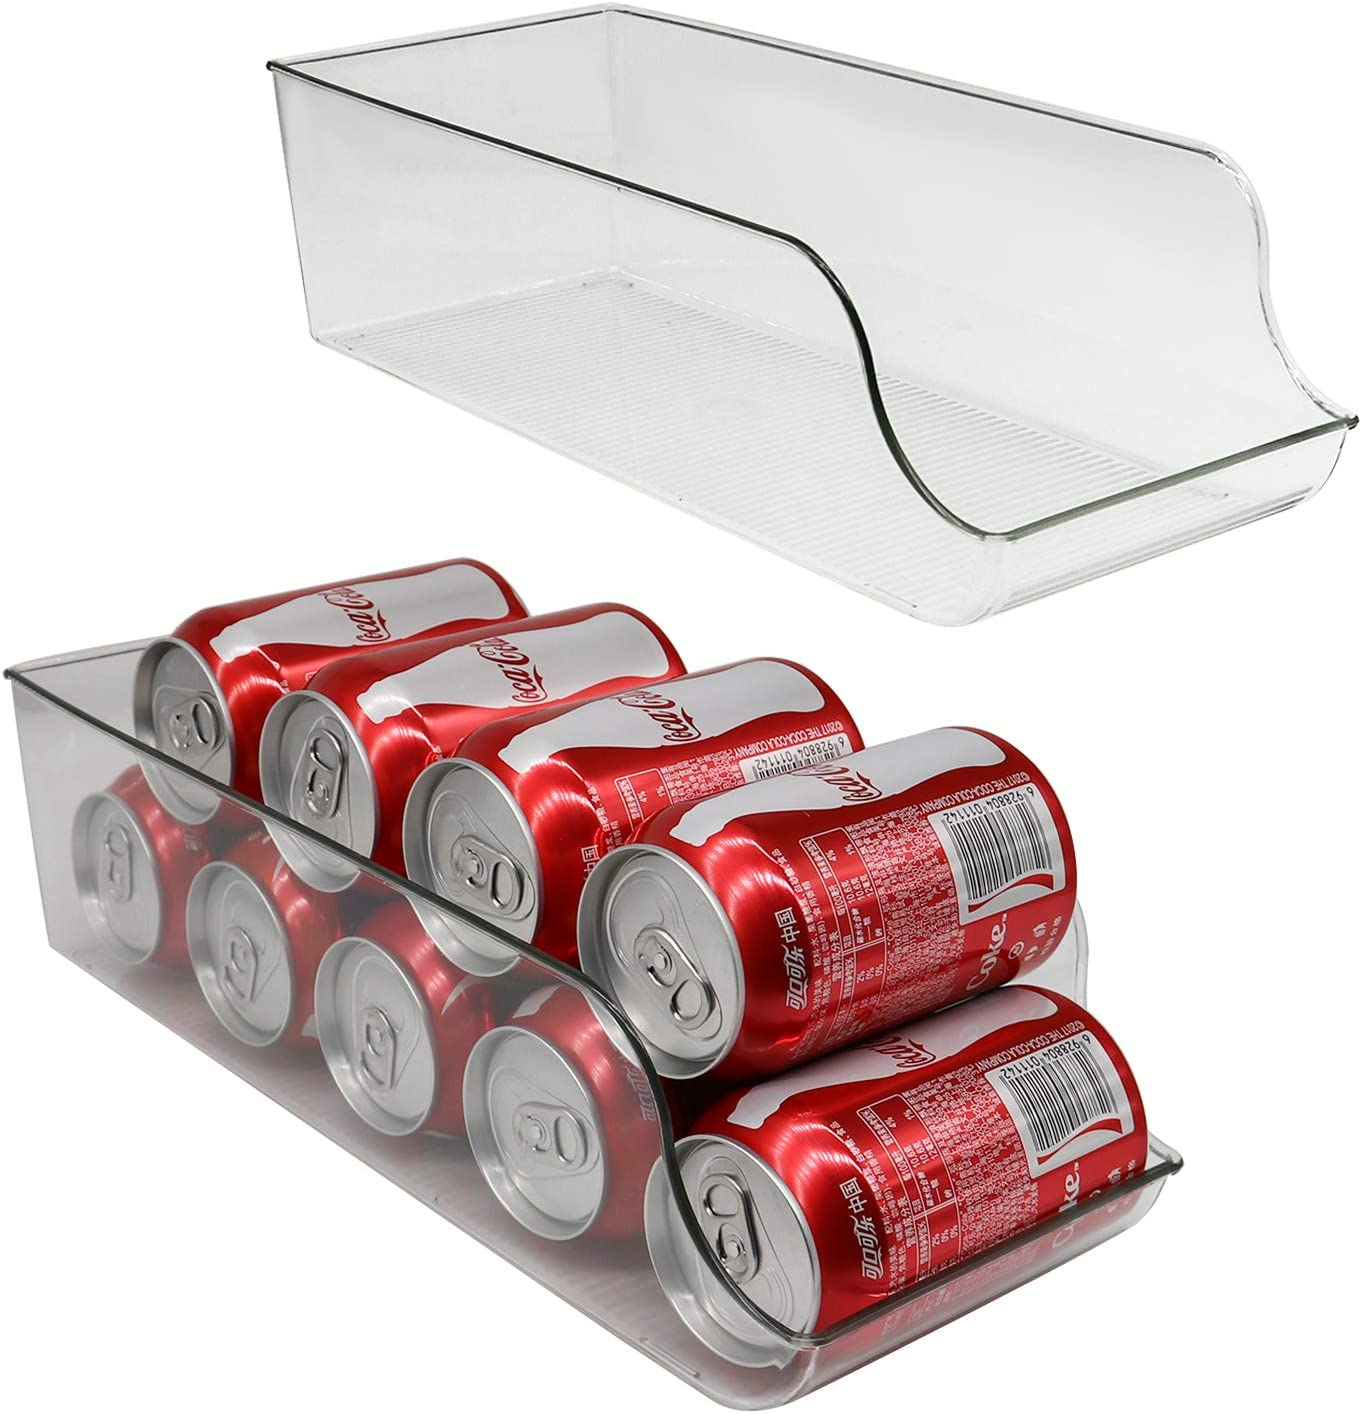 2 Pcs Can Drink Storage Holder,Beverage Dispenser for Refrigerator,Countertop,Cabinets,Pantry,Hold Up To 9 Standard Size (11oz) Cans